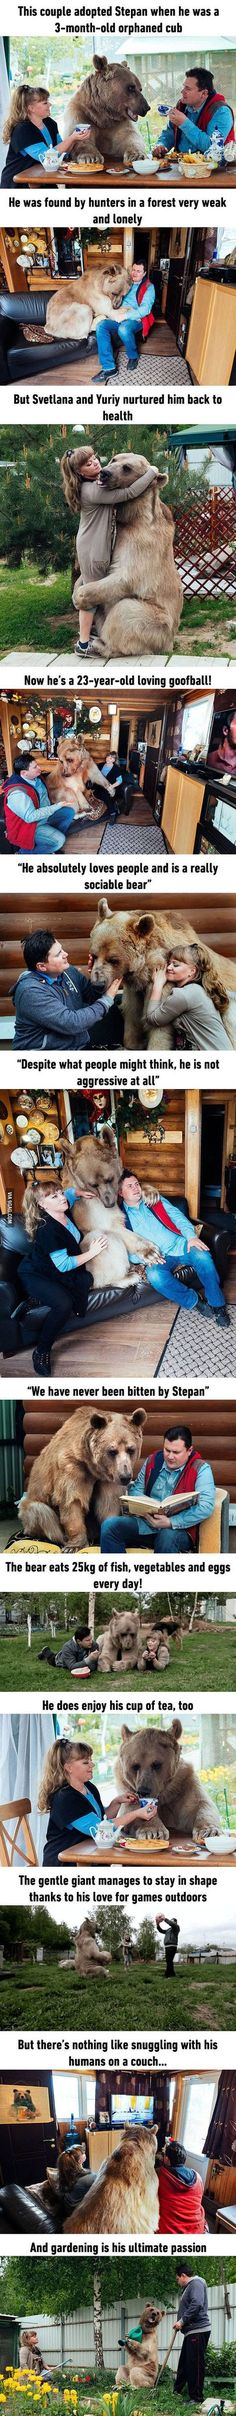 Russian Couple Adopted An Orphaned Bear 25 Years Ago, And They Are Still Living Happily Together Russian Couple Adopted An Orphaned Bear 23 Years Ago, And They Are Still Living Happily Together<br> More memes, funny videos and pics on Cute Funny Animals, Funny Animal Pictures, Cute Baby Animals, Funny Cute, Animals And Pets, Cute Pictures, Animal Pics, Wild Animals, Hilarious